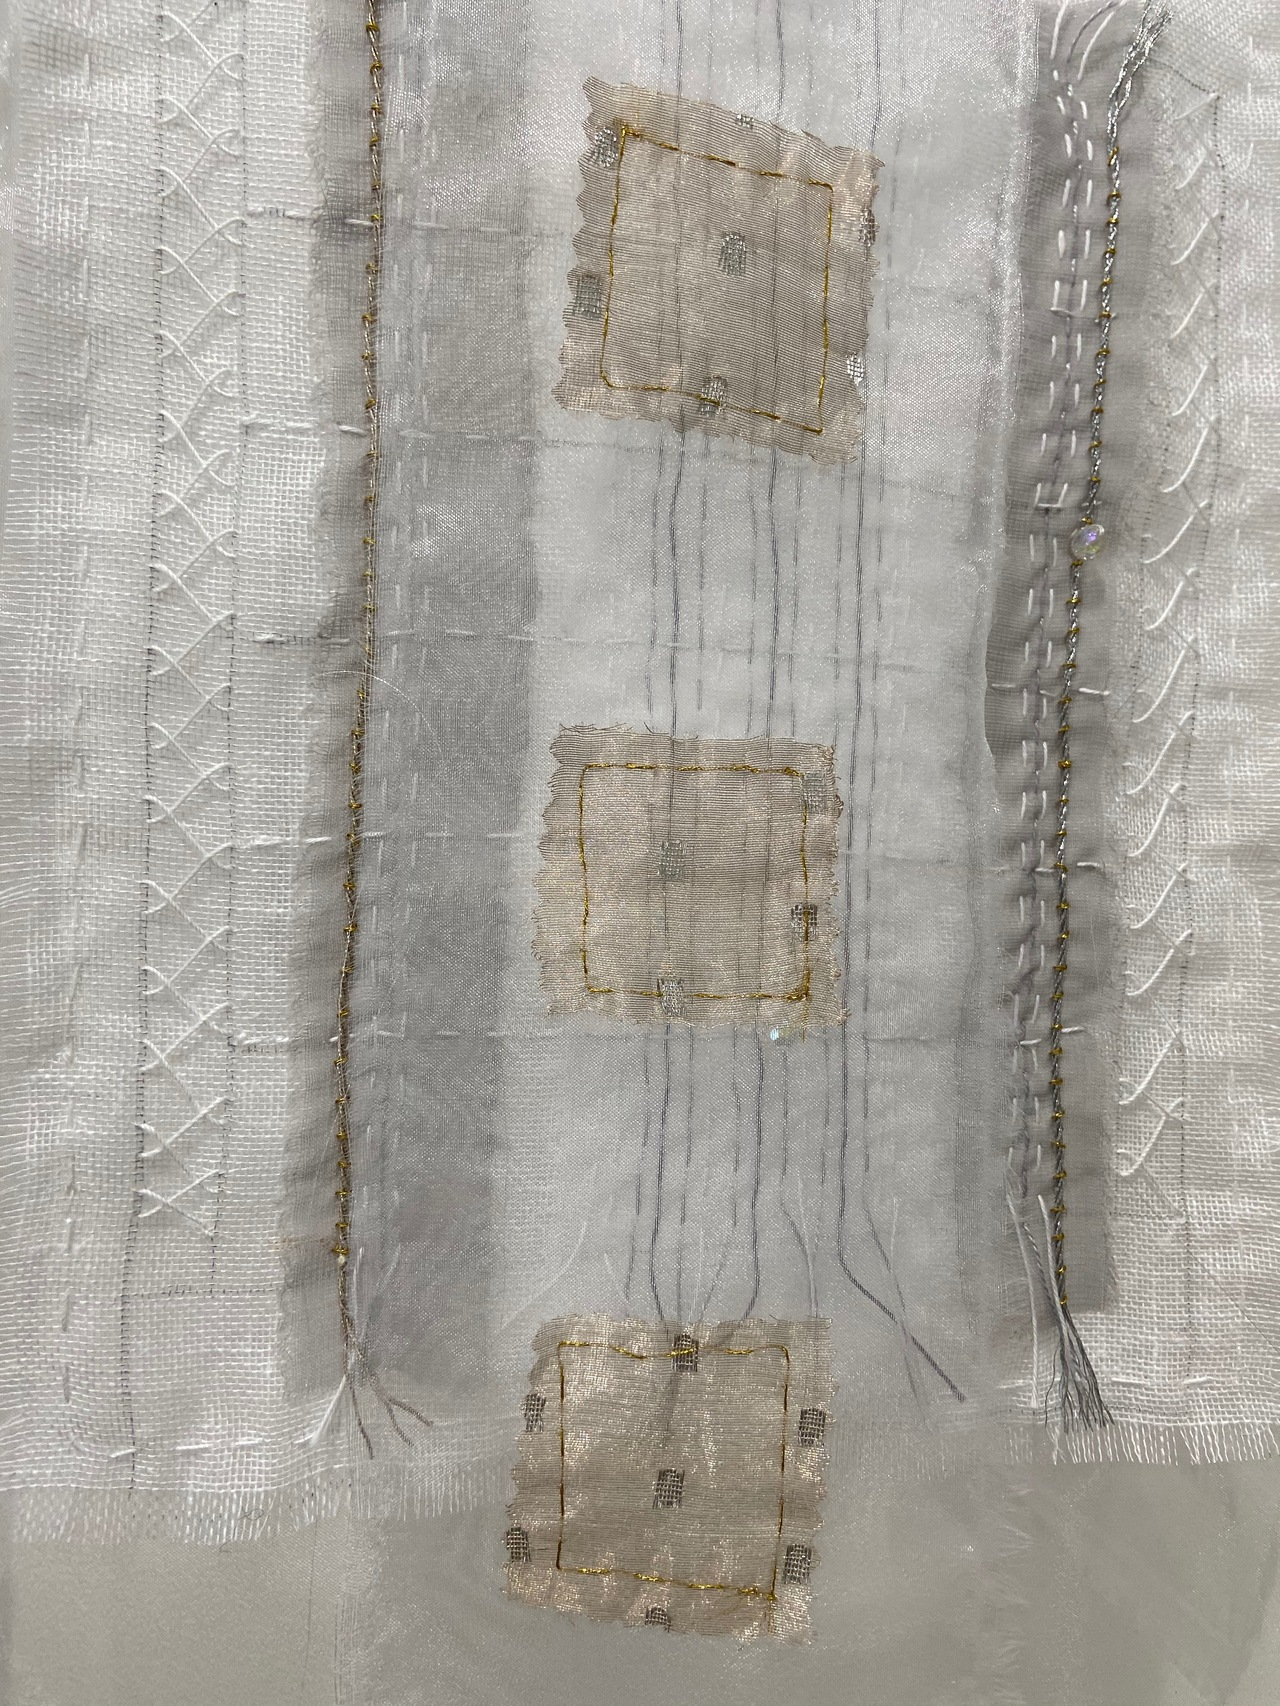 Meg Pierce Recent  2020 organza, metallic fabric and thread, found wire